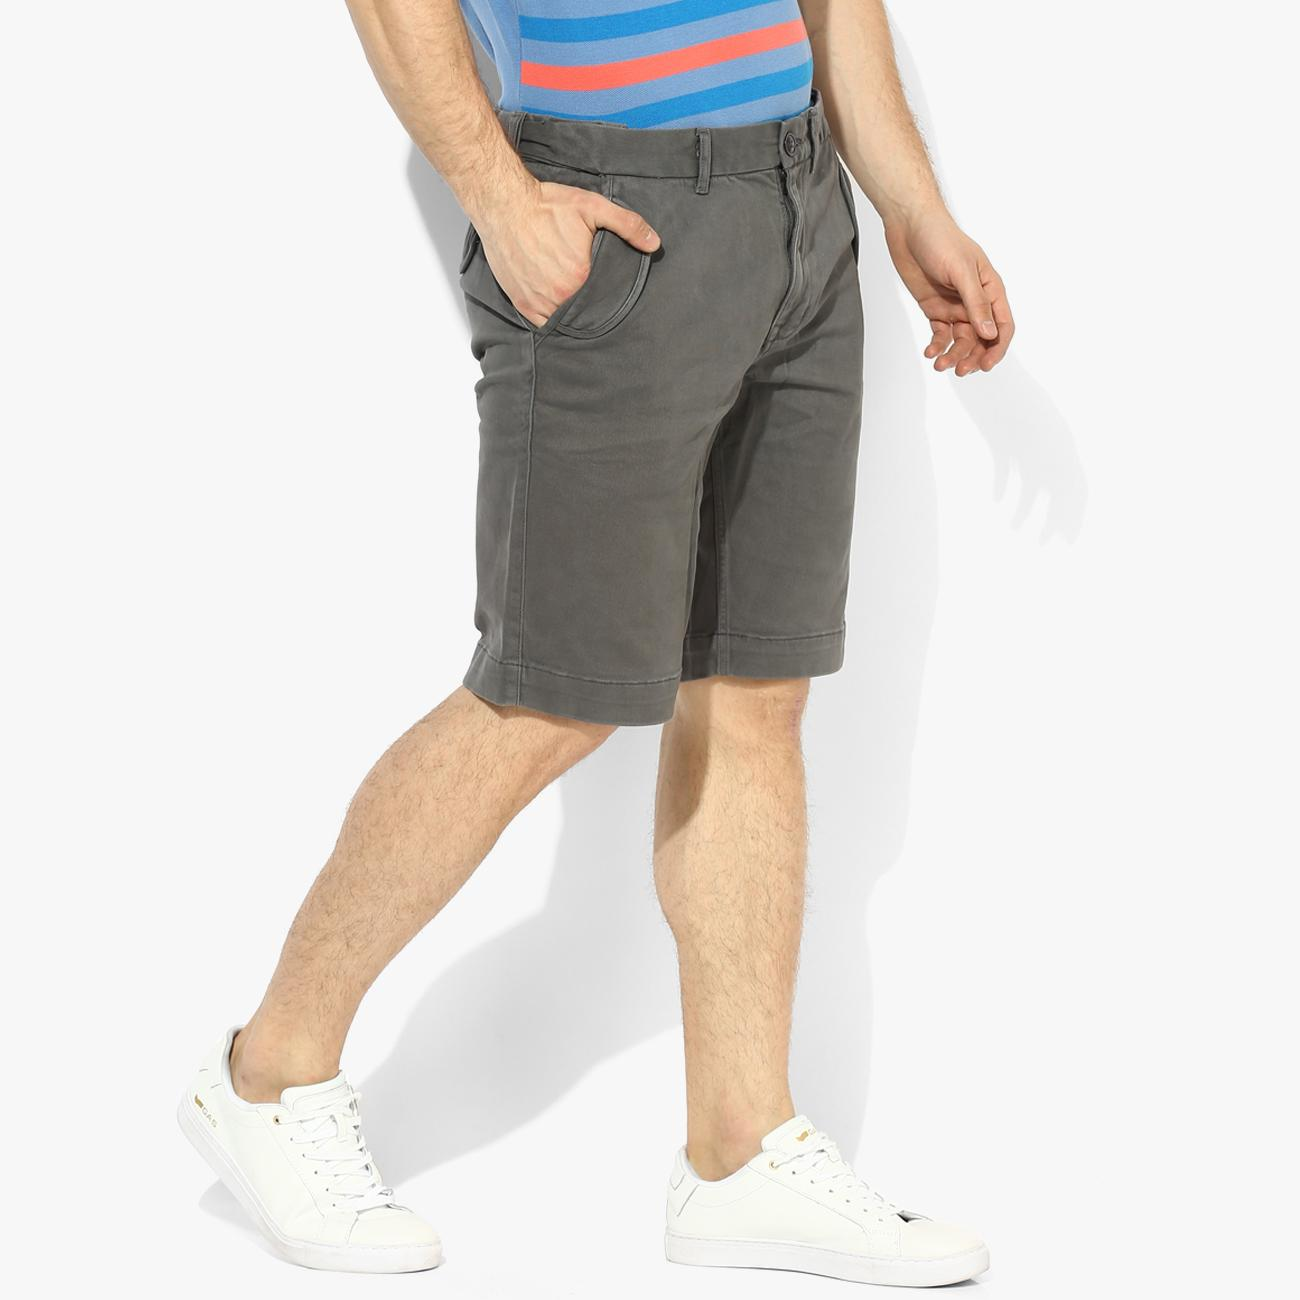 Men's Gray Shorts Online at Red Chief